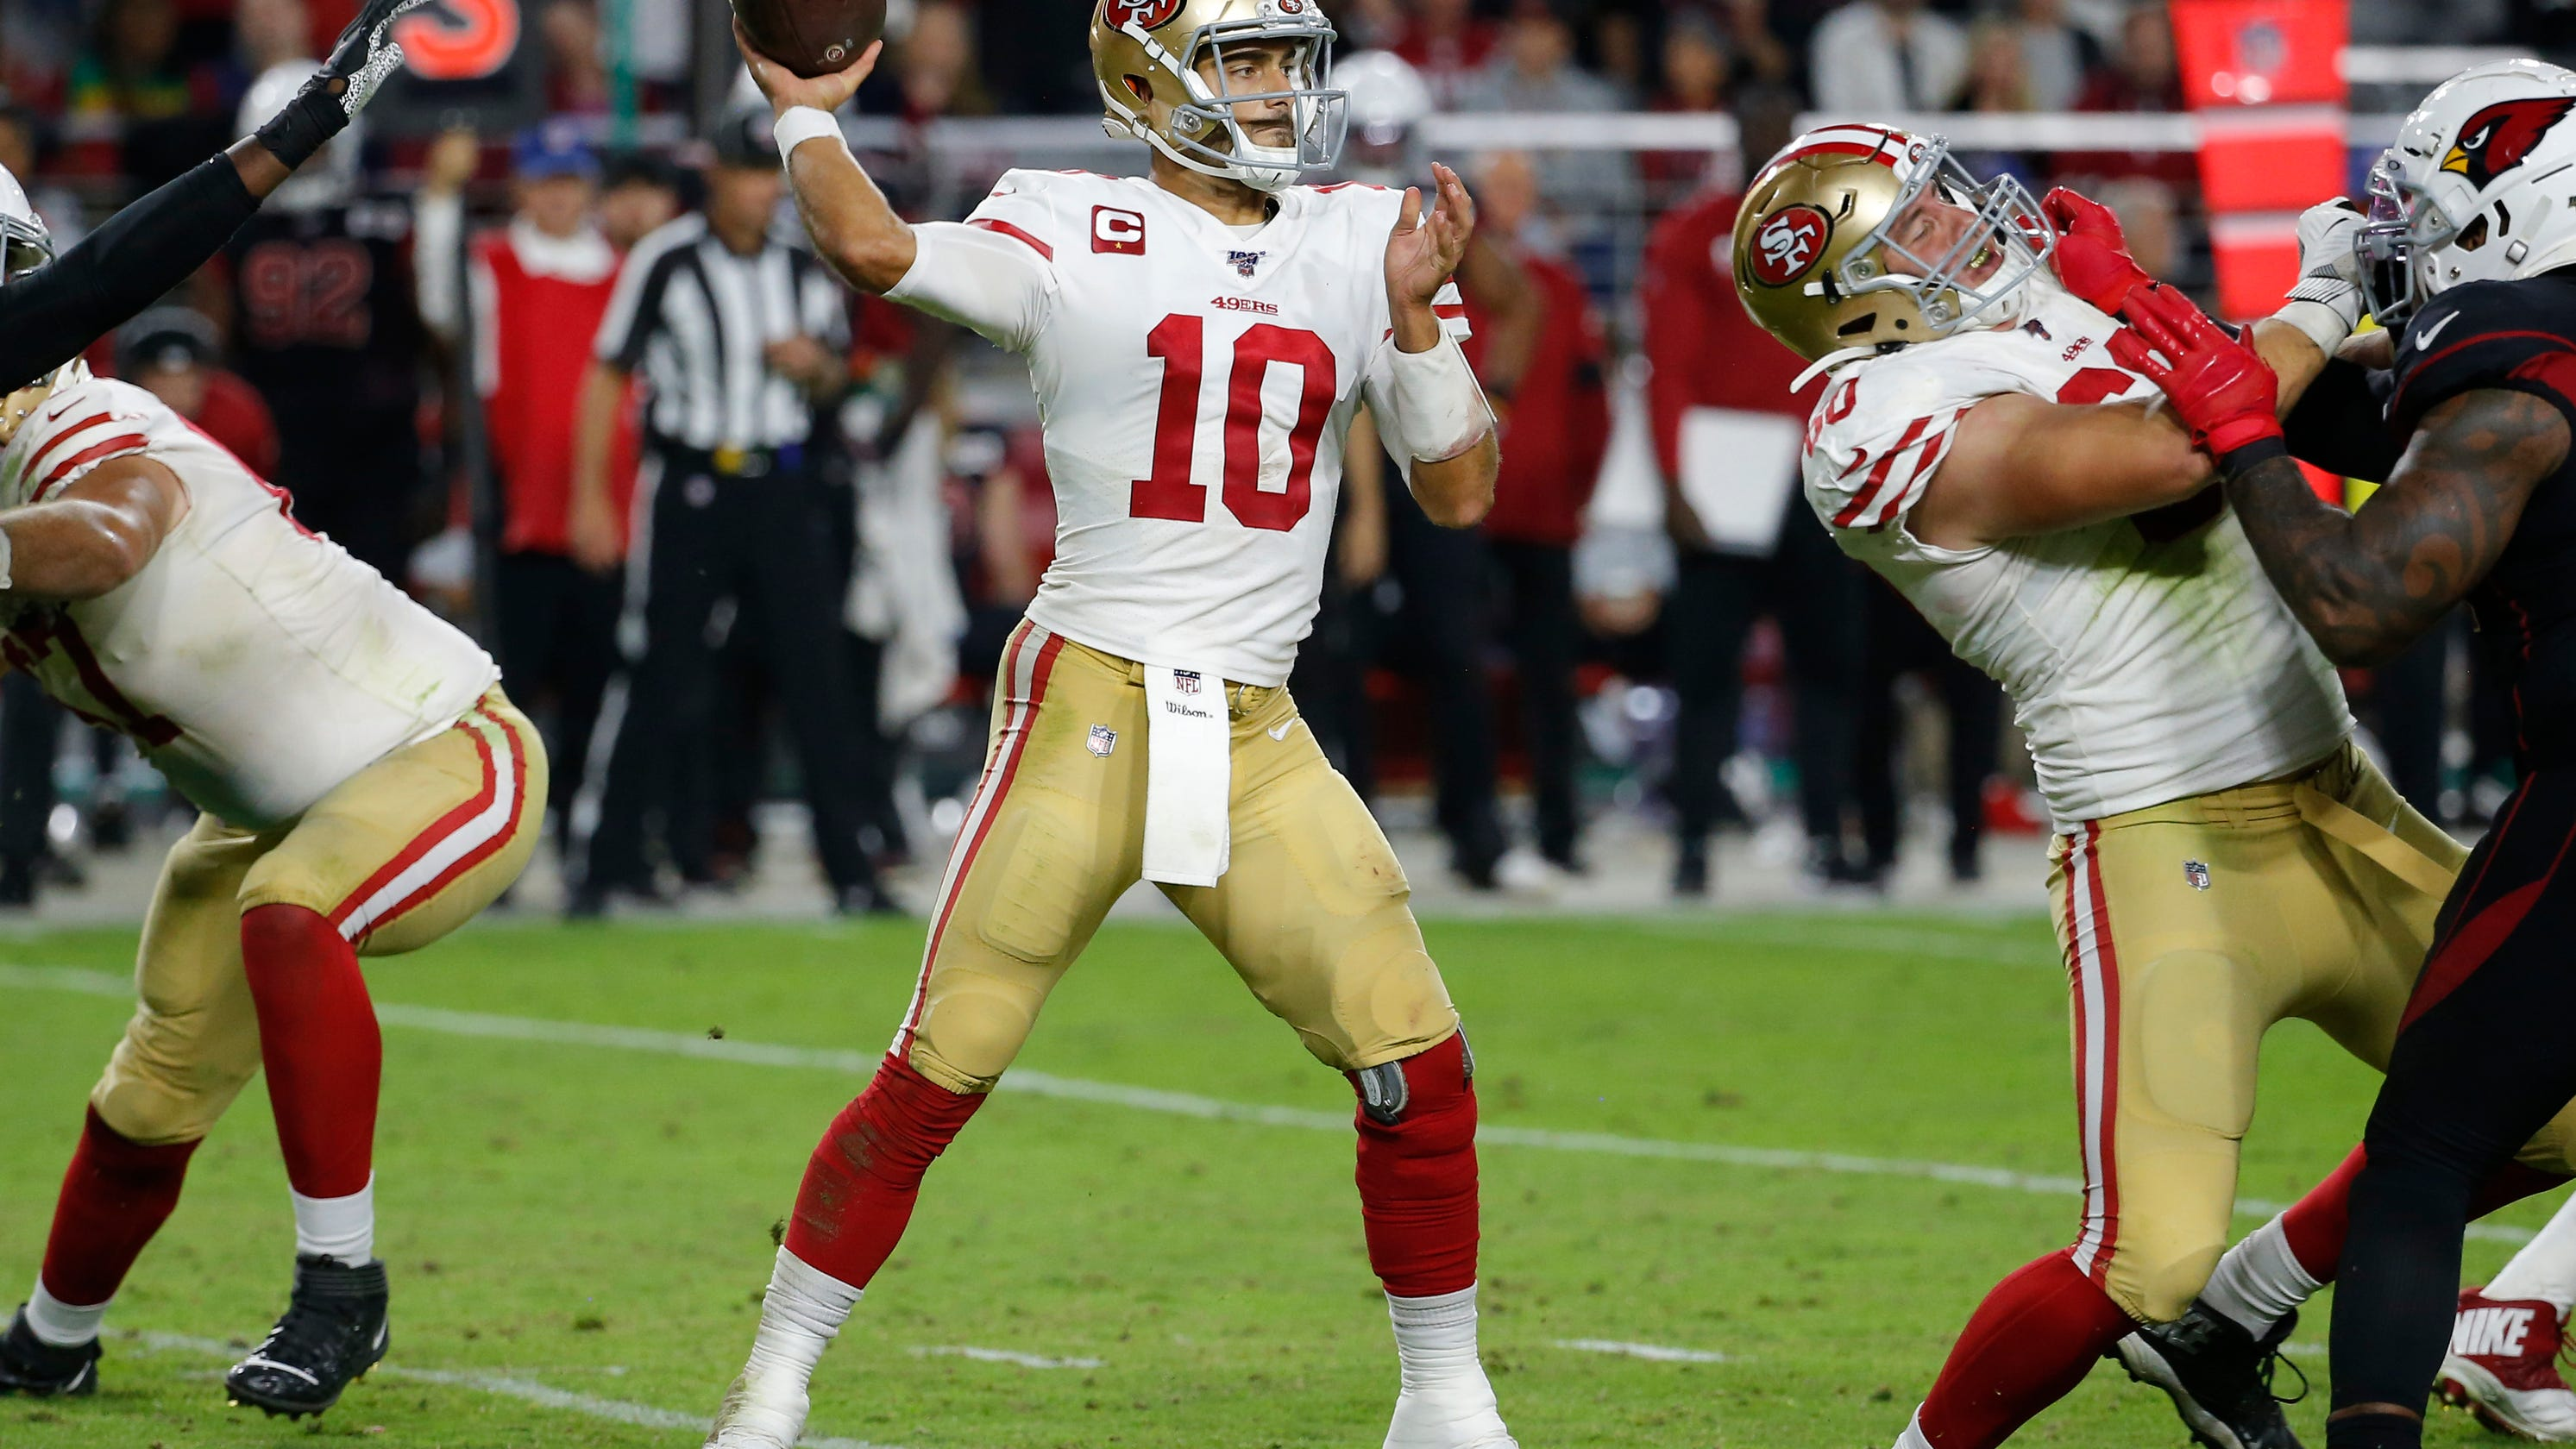 Seahawks 49ers Rivalry On Center Stage After Dormant Stretch